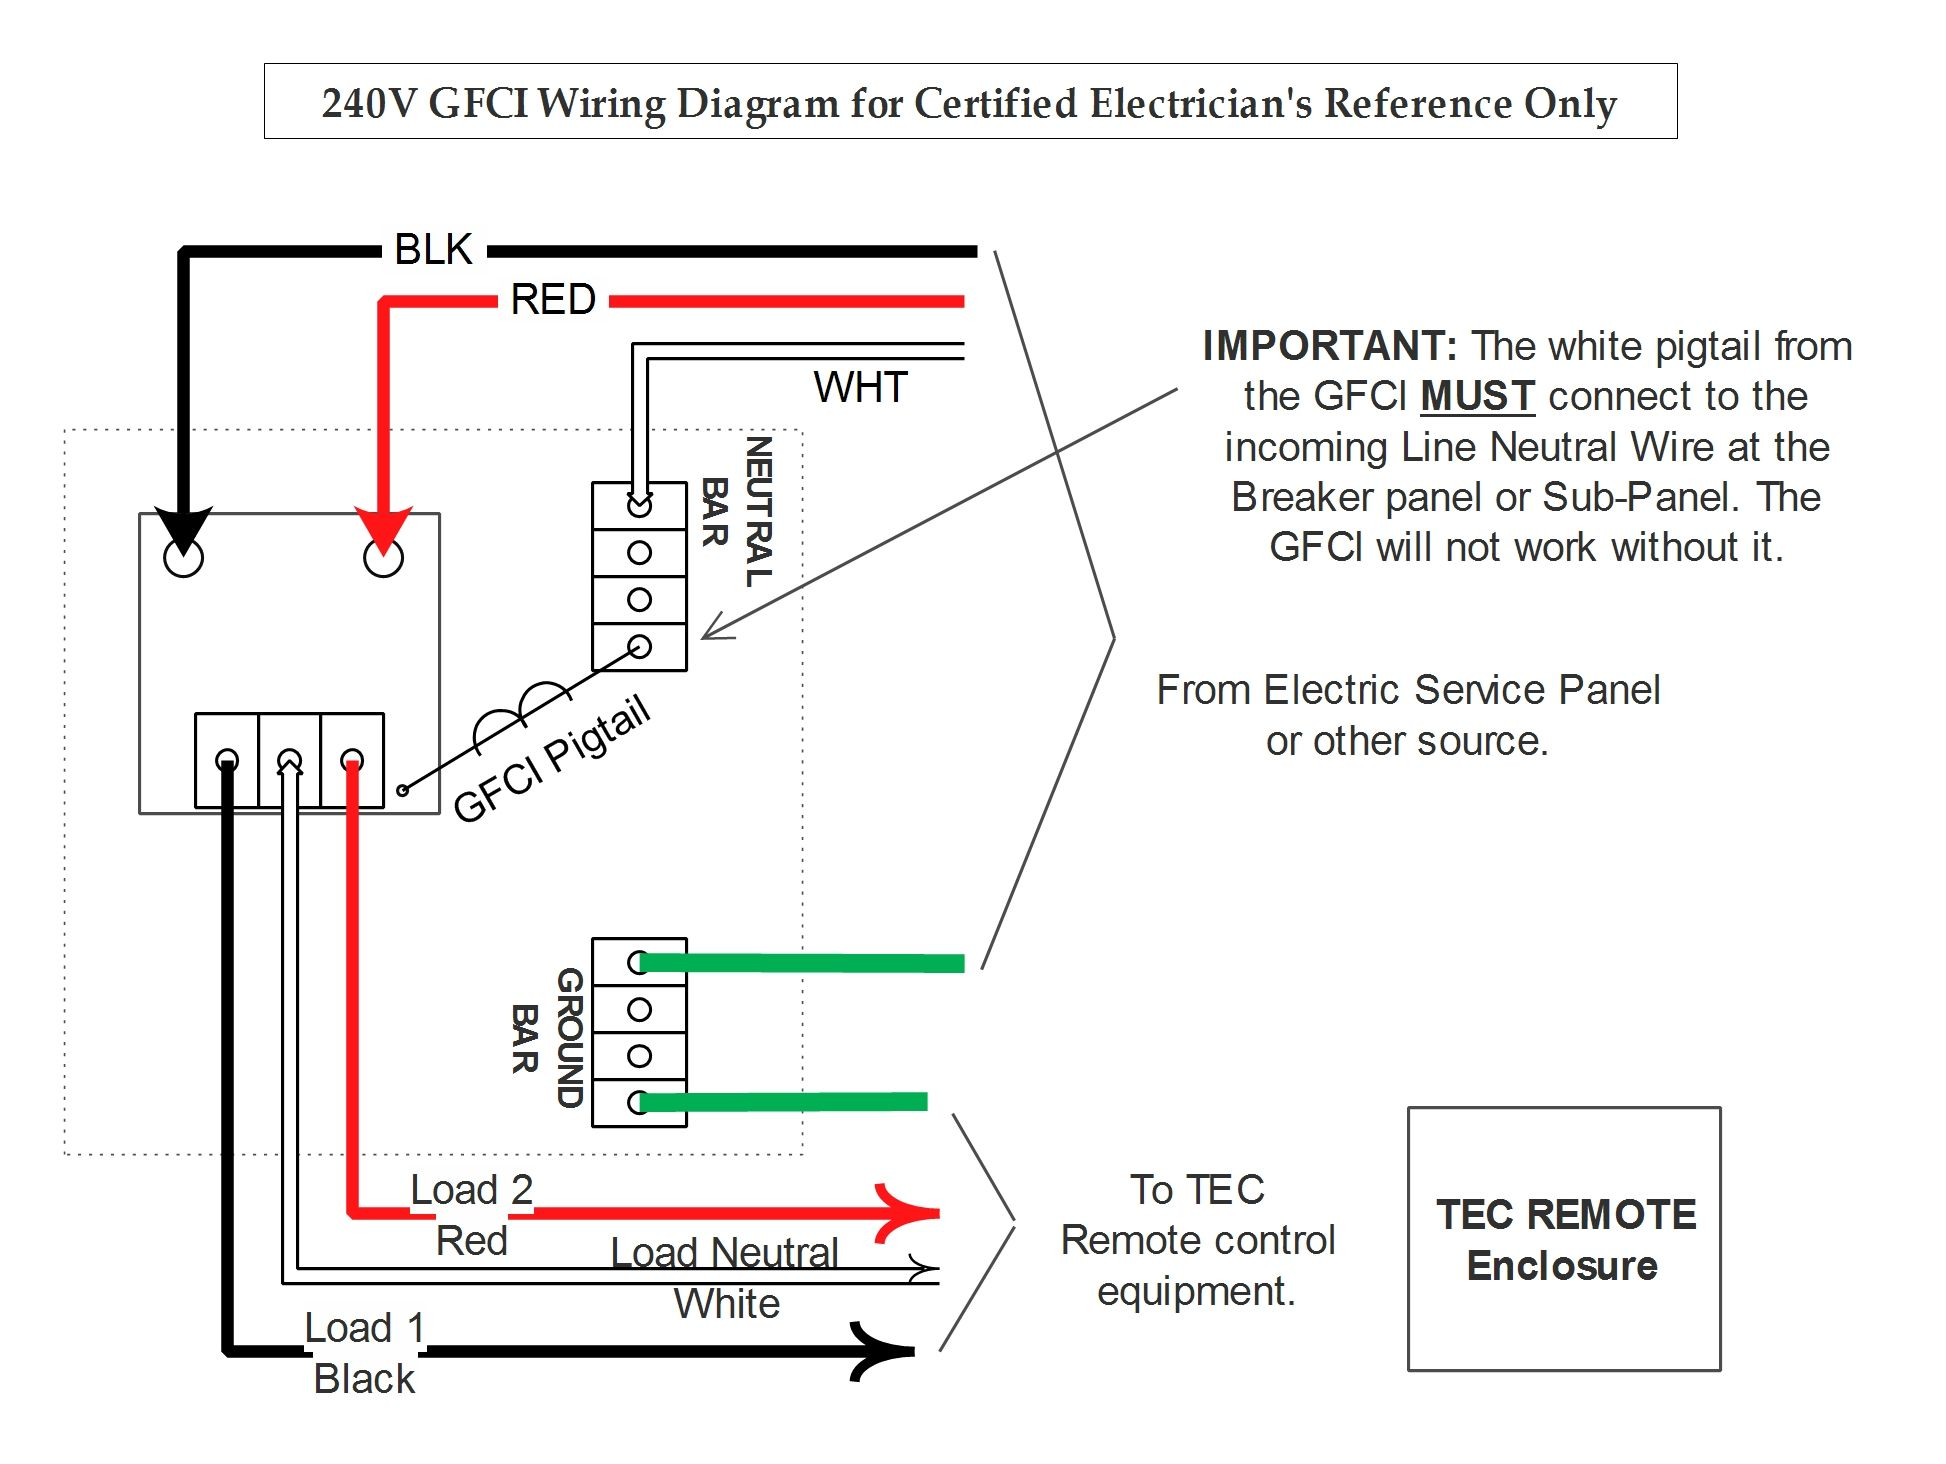 GFCI 240 Wiring wiring & installation boat lift wiring diagram at bakdesigns.co